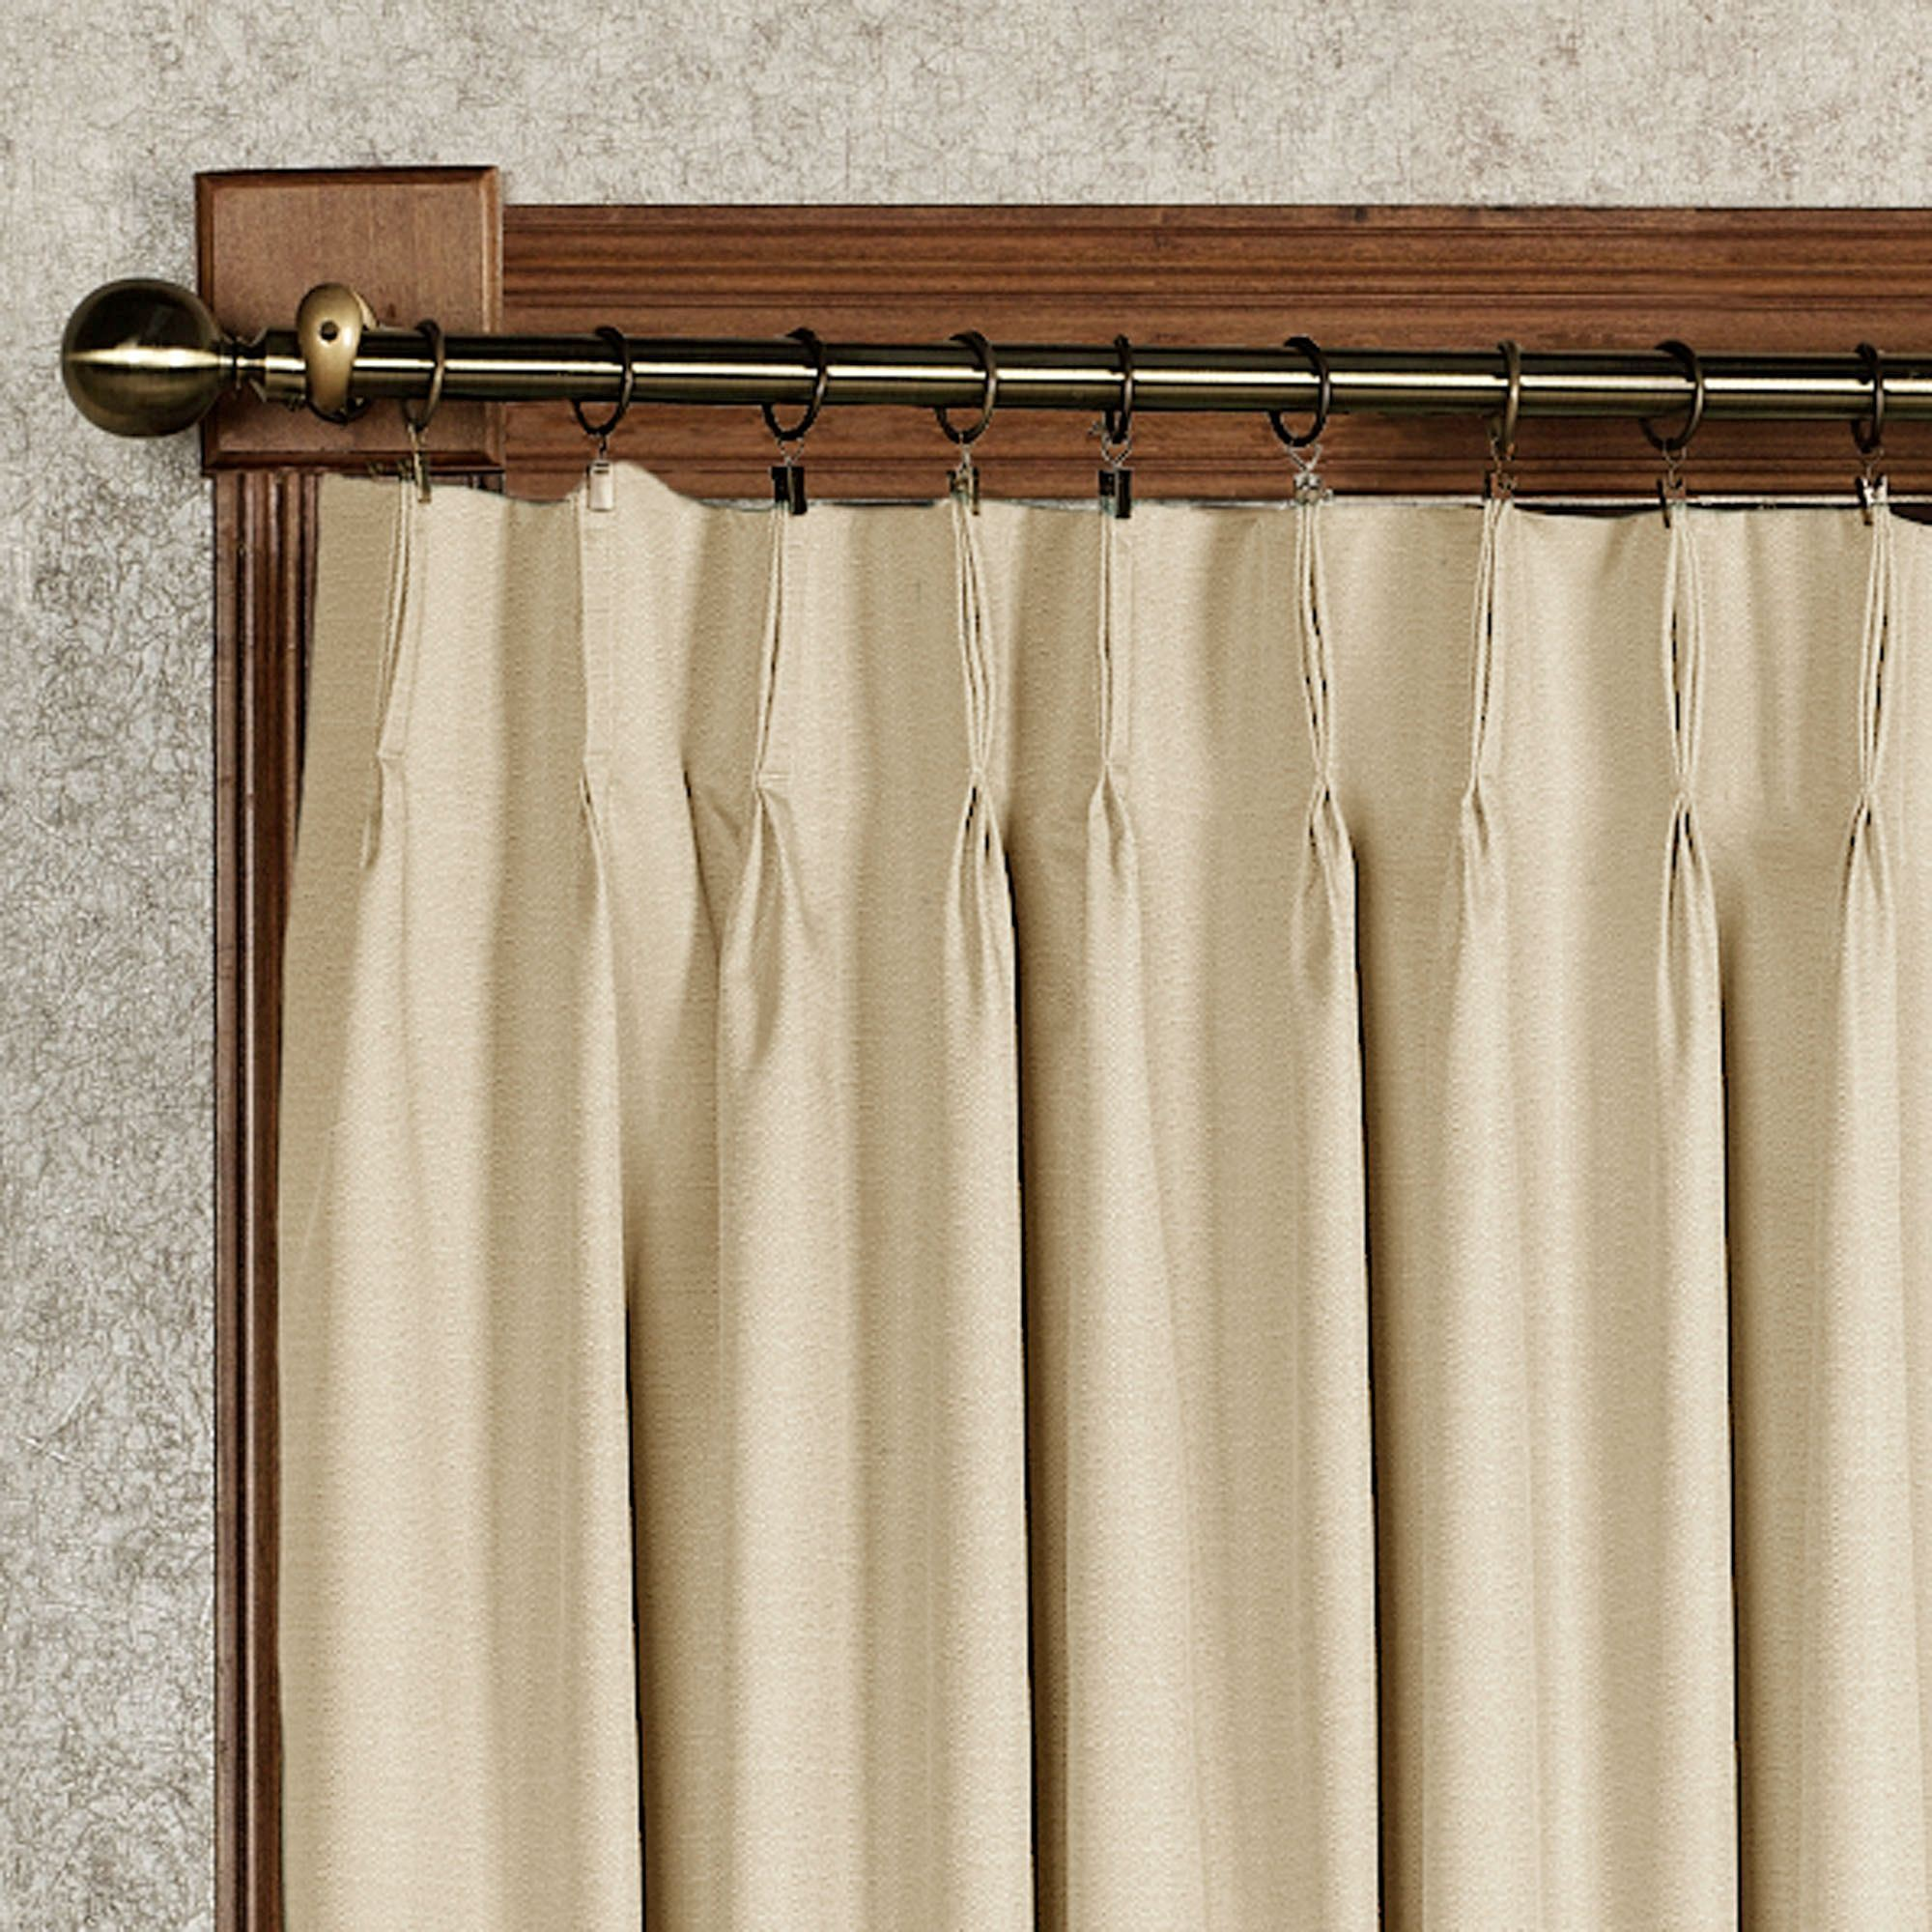 double valance striped pinch murrumbidgee curtains embossed reflective pleat